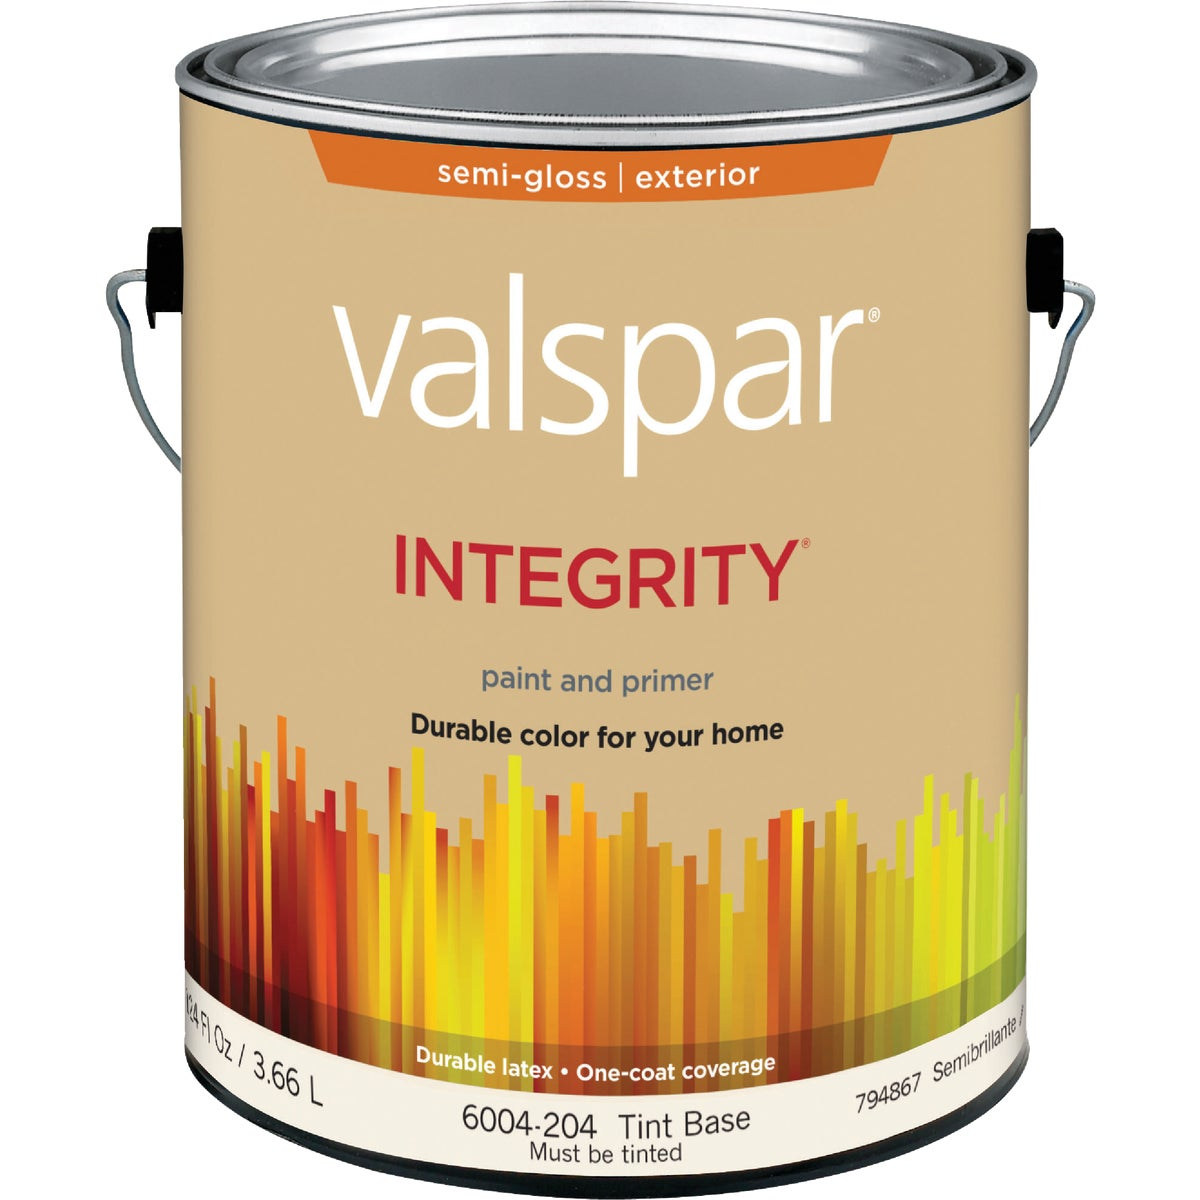 EXT S/G TINT BS PAINT - 004.6004204.007 by Valspar Corp